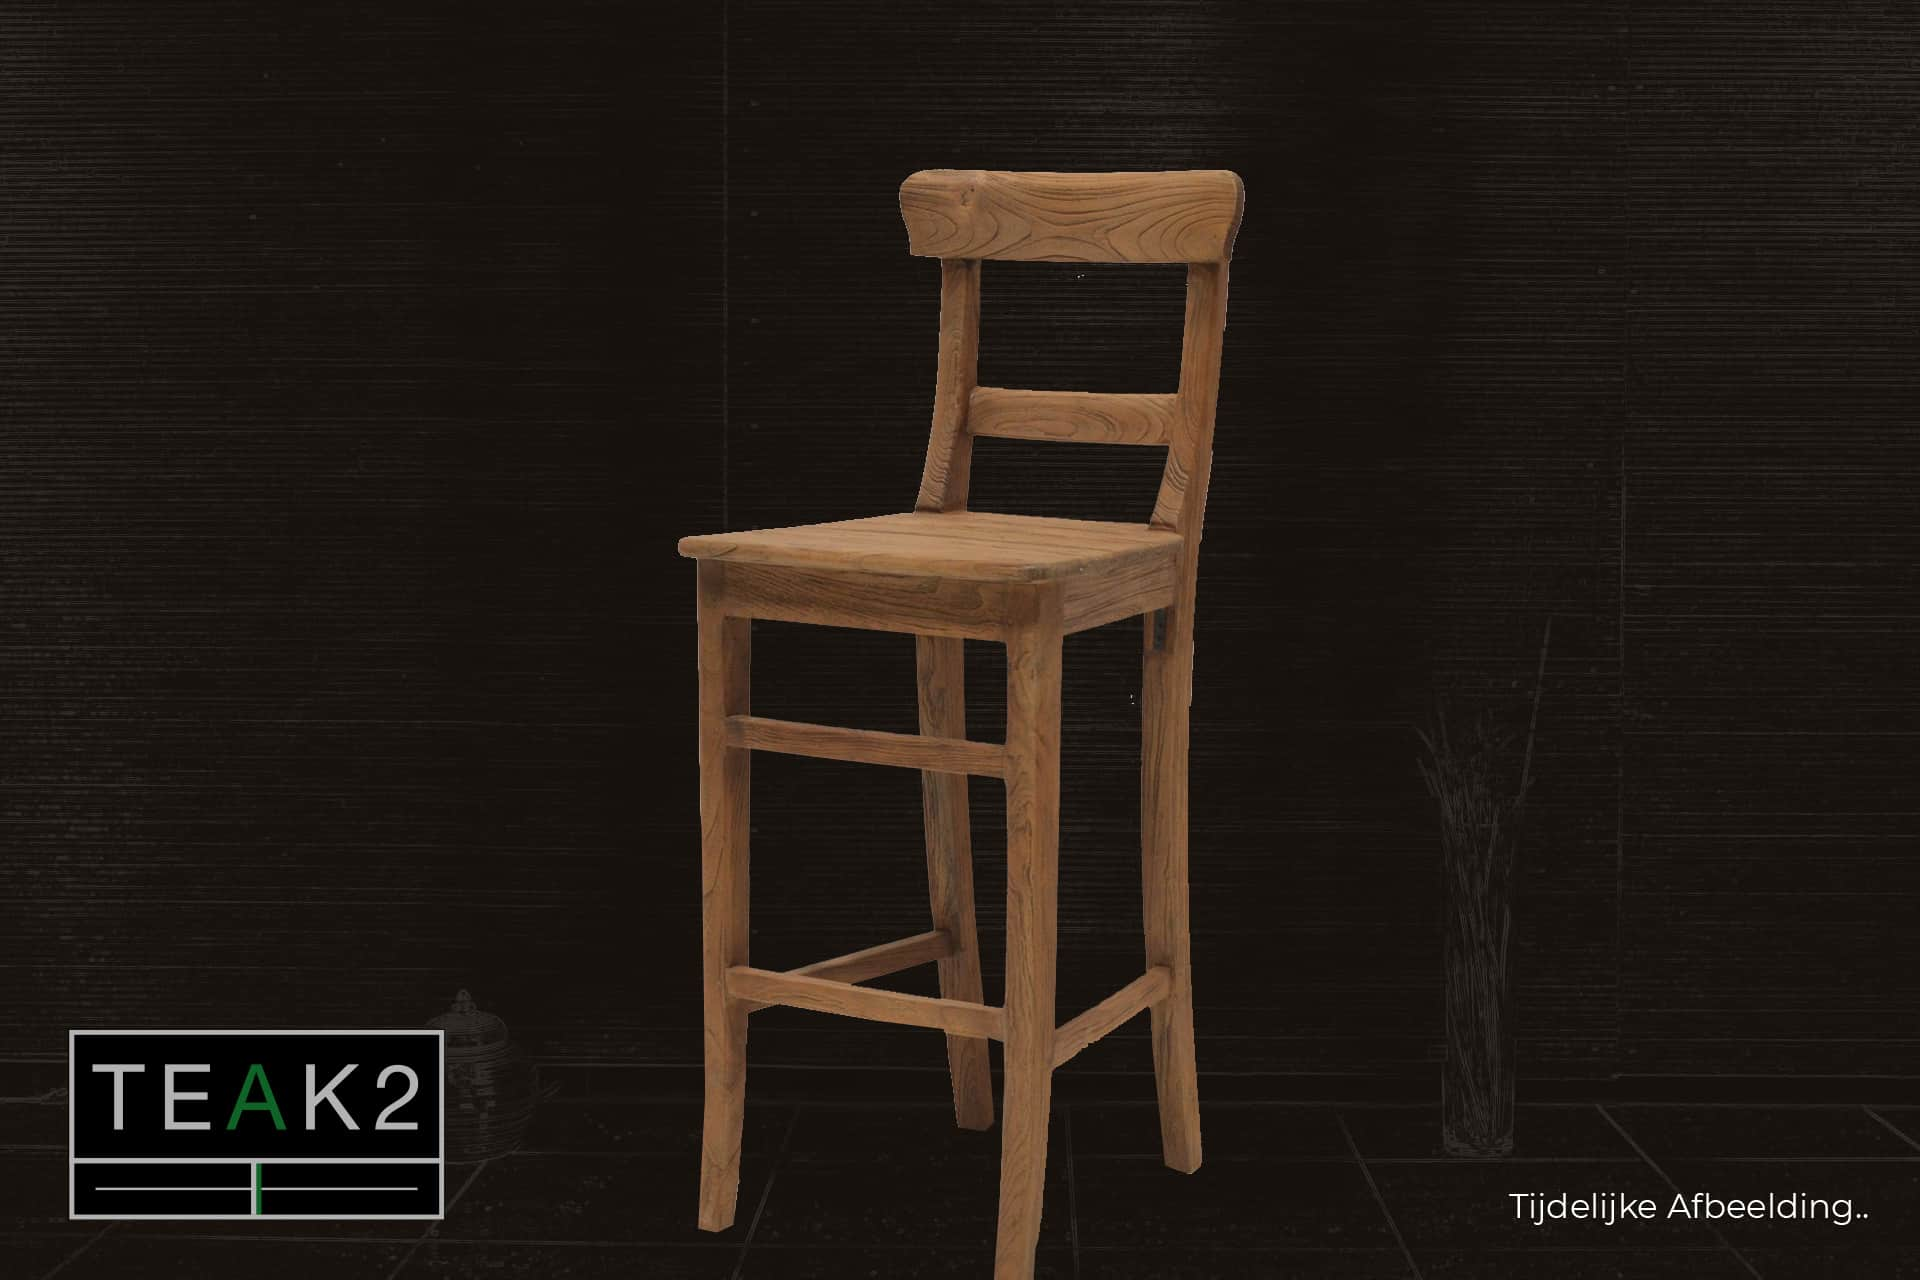 Bar stool Teak Kursi L-Old | rural teak bar stool in beautiful old teak. Comfortable and solid bar stool, quality from Indonesia - TEAK2.